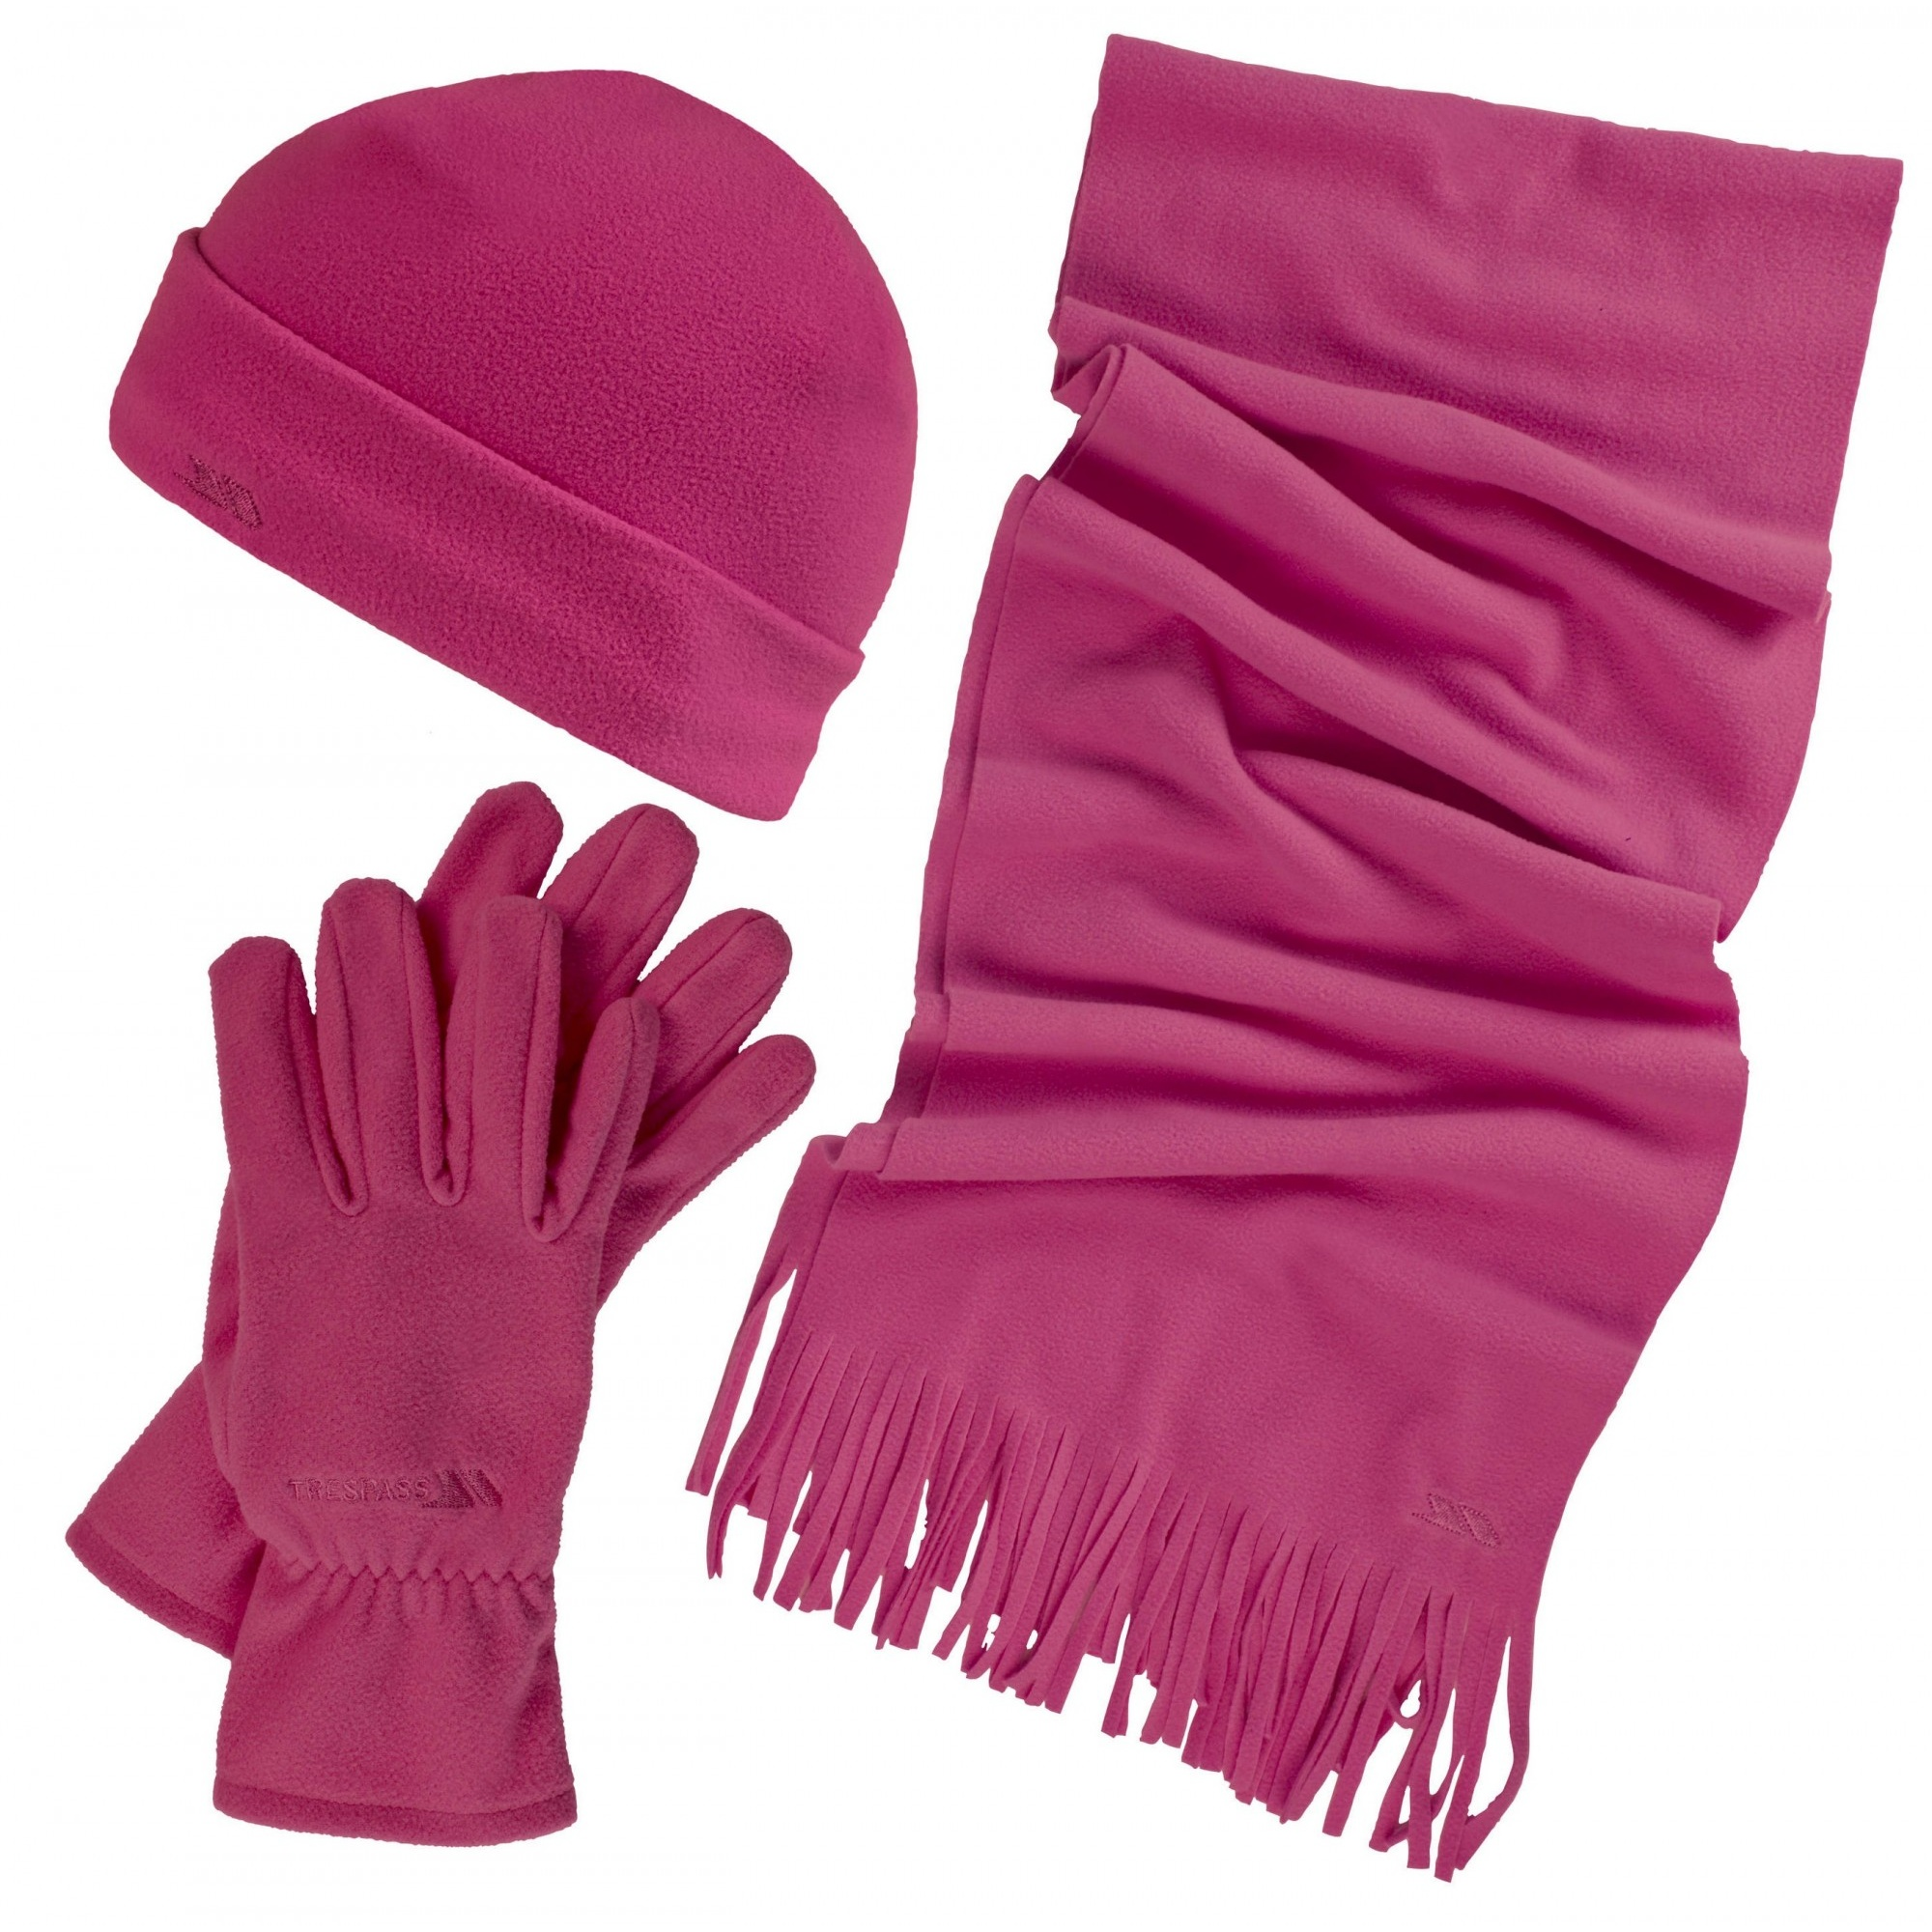 Gloves, Scarves, & Hats for Women Ralph Lauren's collection of women's hats, scarves and gloves has all your seasonal essentials. Wear a printed silk scarf around your neck, tie it to a handbag for added detailing all year round, or cozy up in wool hats and gloves on cold winter days.